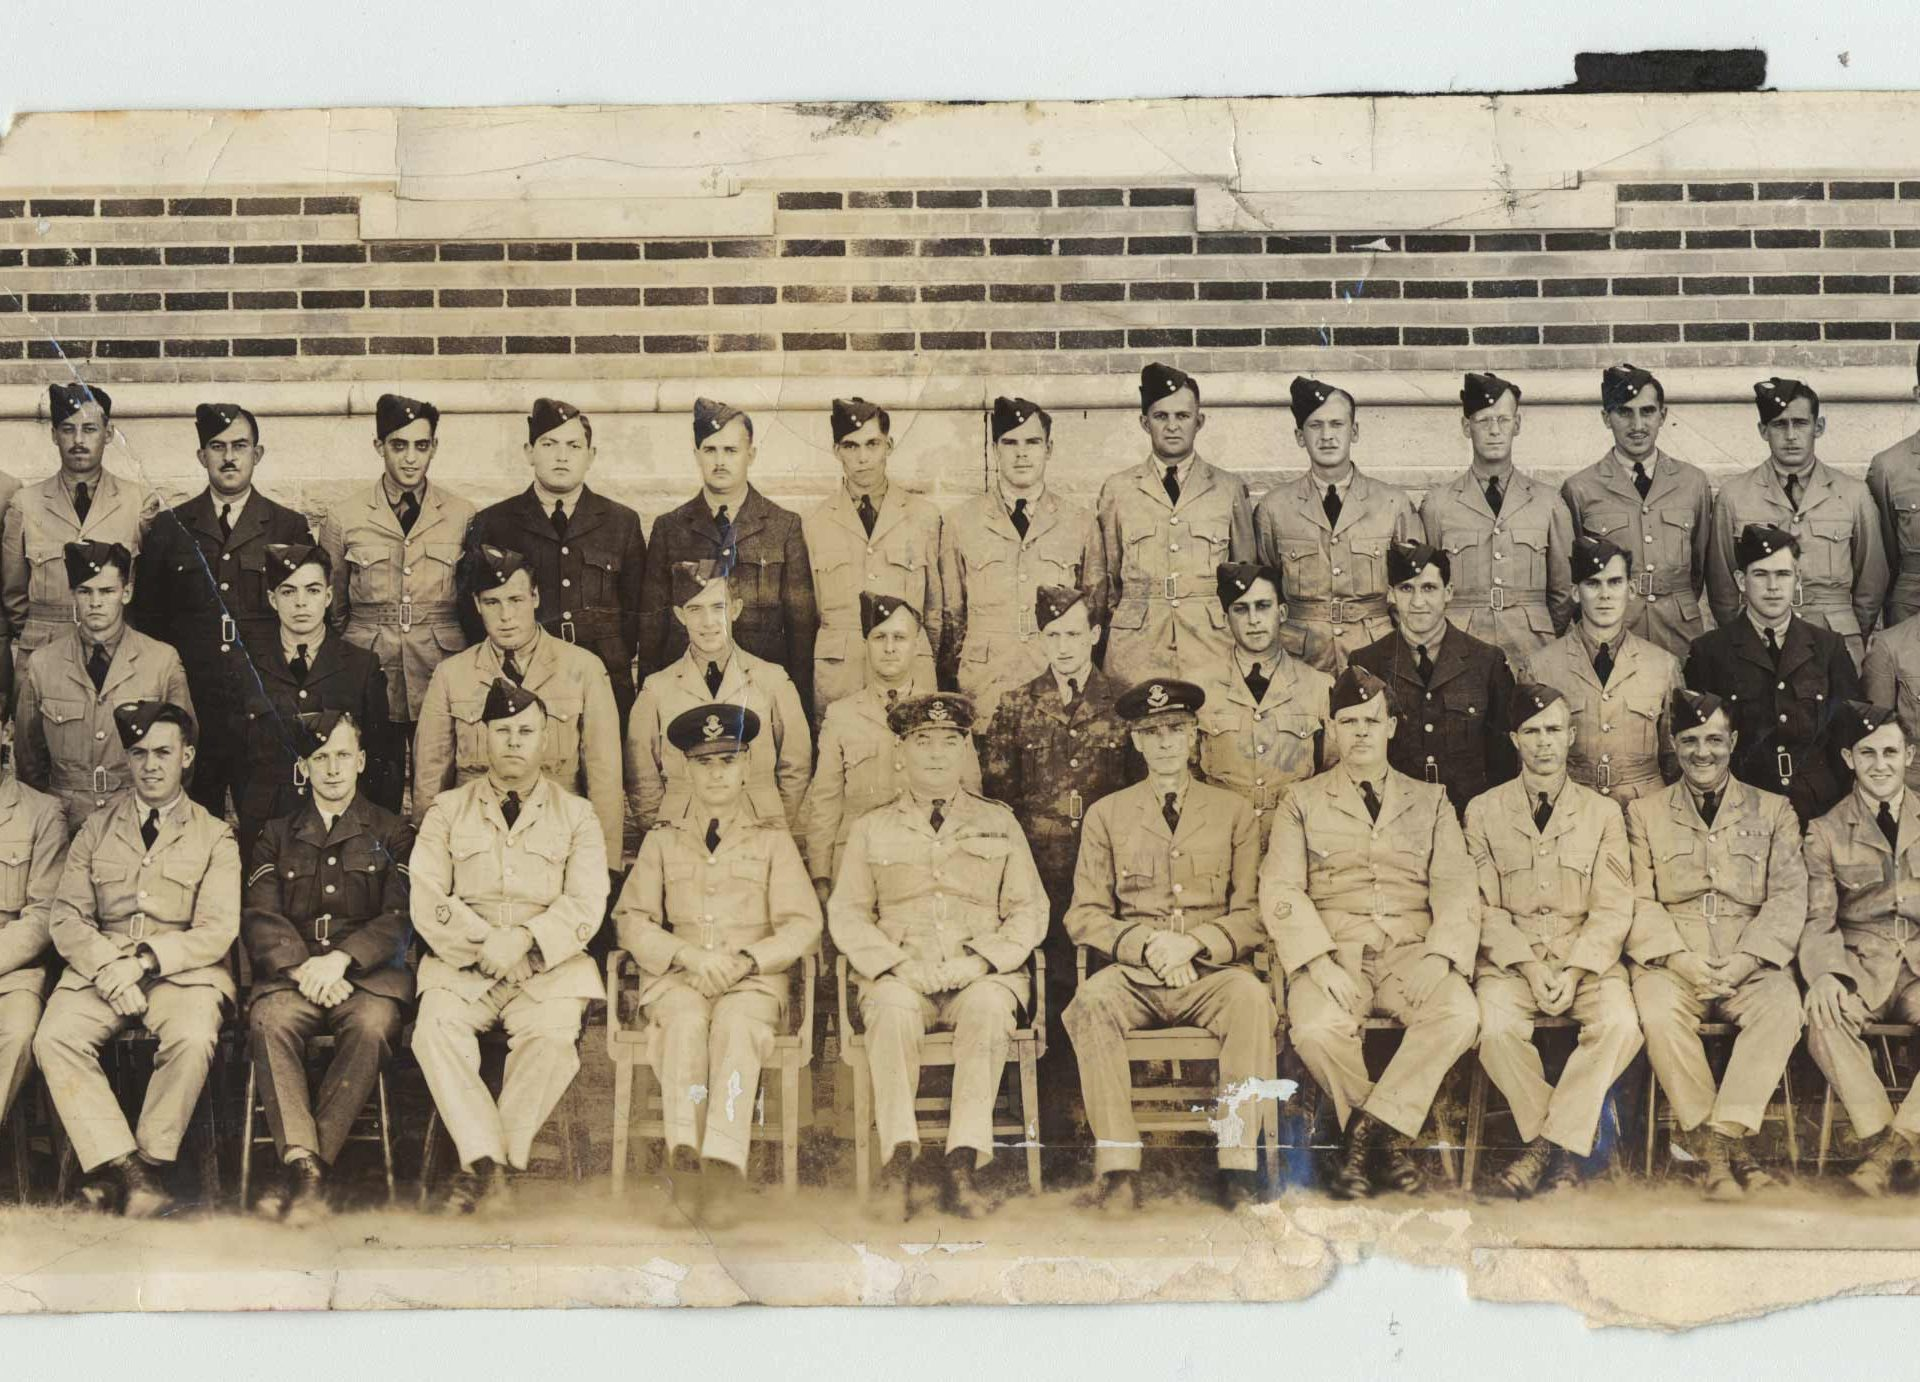 Saul Stein, second row, 5th from right, and his colleagues of the Canadian Royal Air Force in 1945.